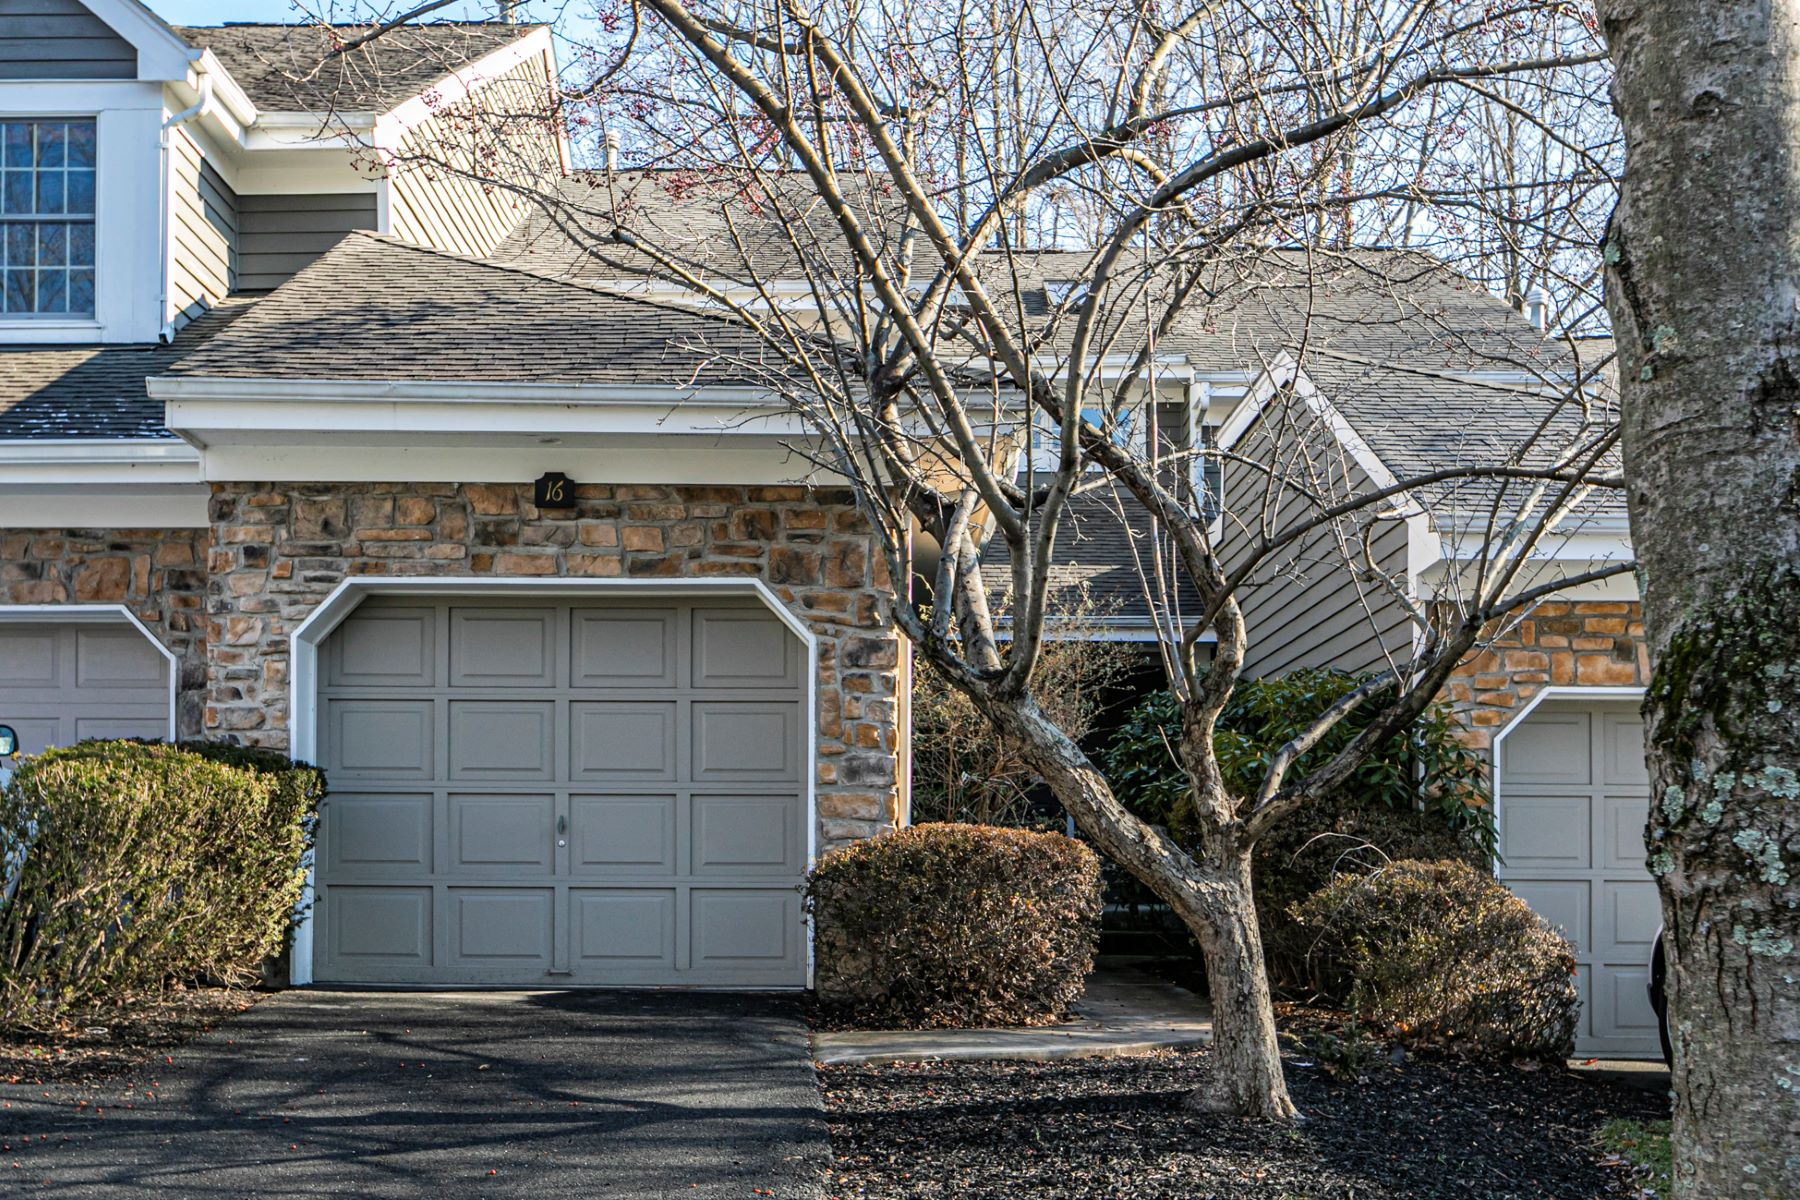 A Value In Upscale Princeton Walk 16 Coriander Drive, Princeton, New Jersey 08540 États-Unis